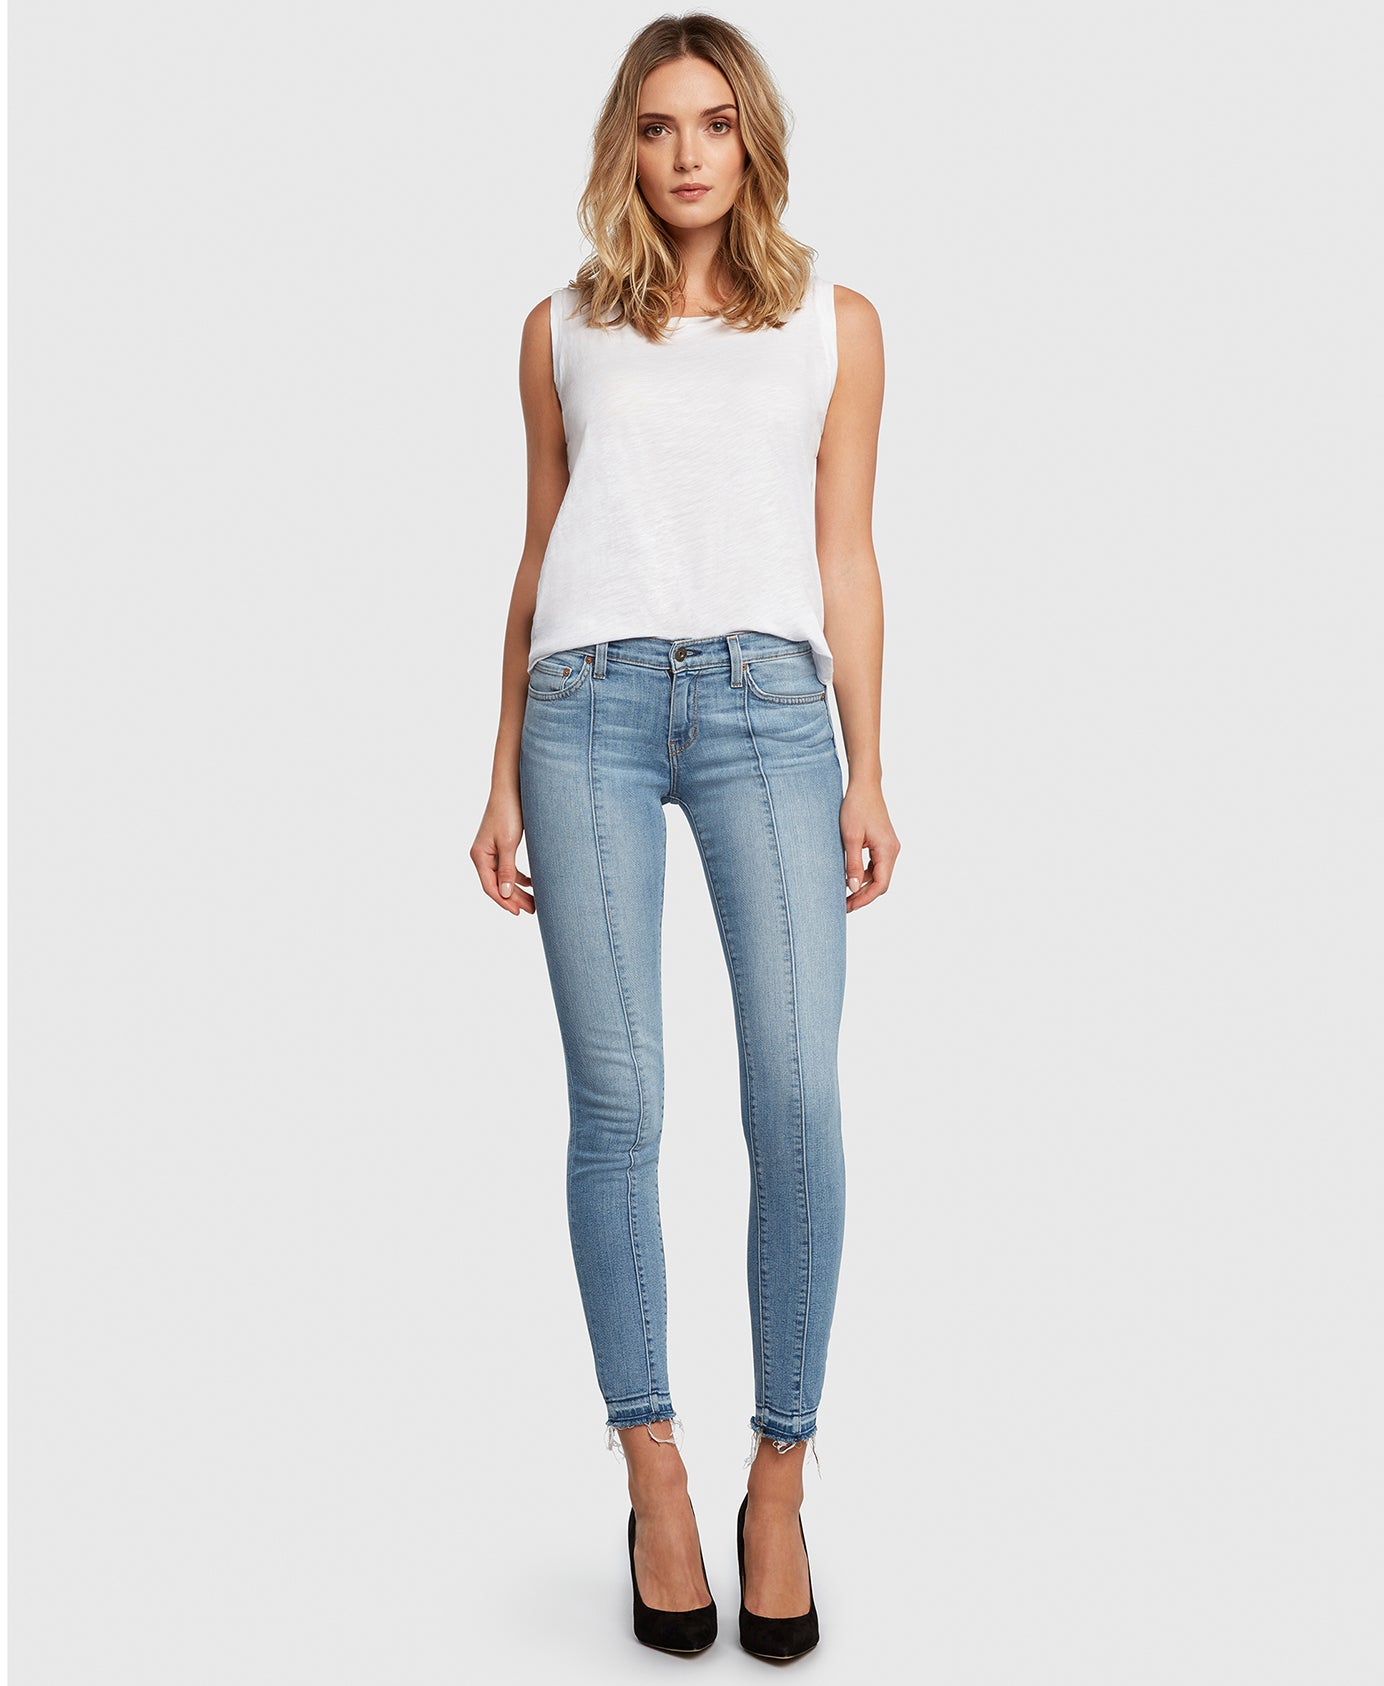 Principle DREAMER in Walk the Line center seam light wash skinny